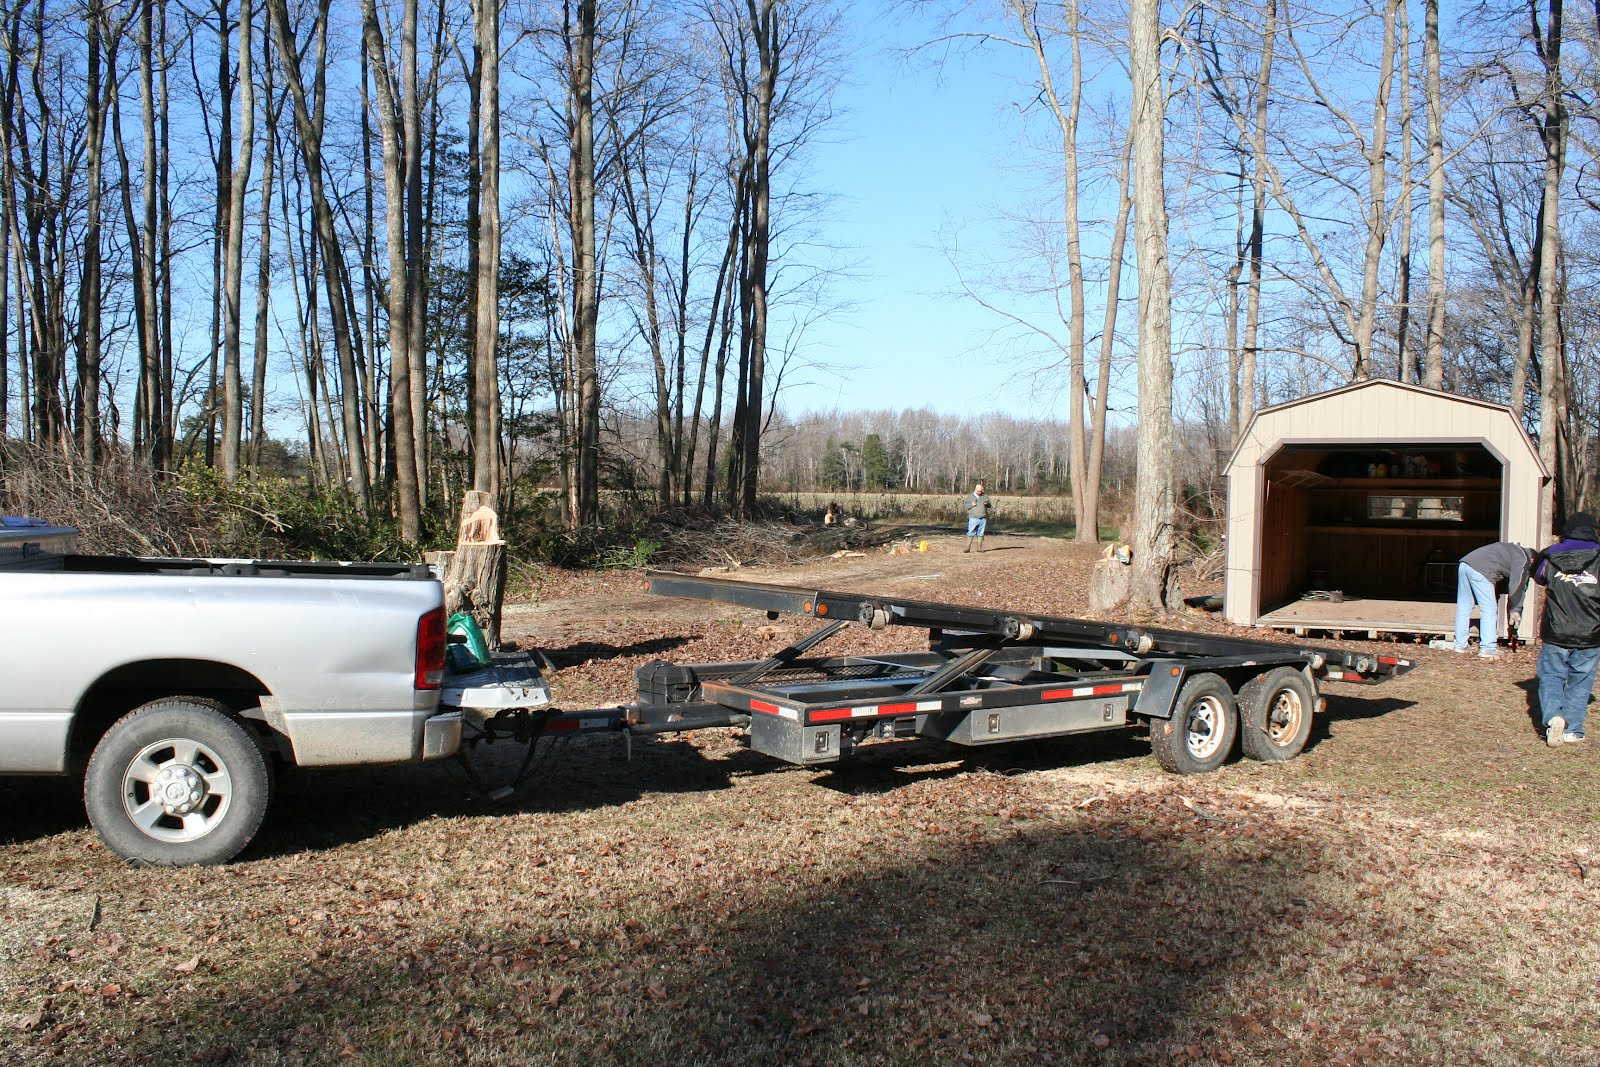 ... Shed : Storage Shed Plans – Build A Firewood Storage Shed | Shed